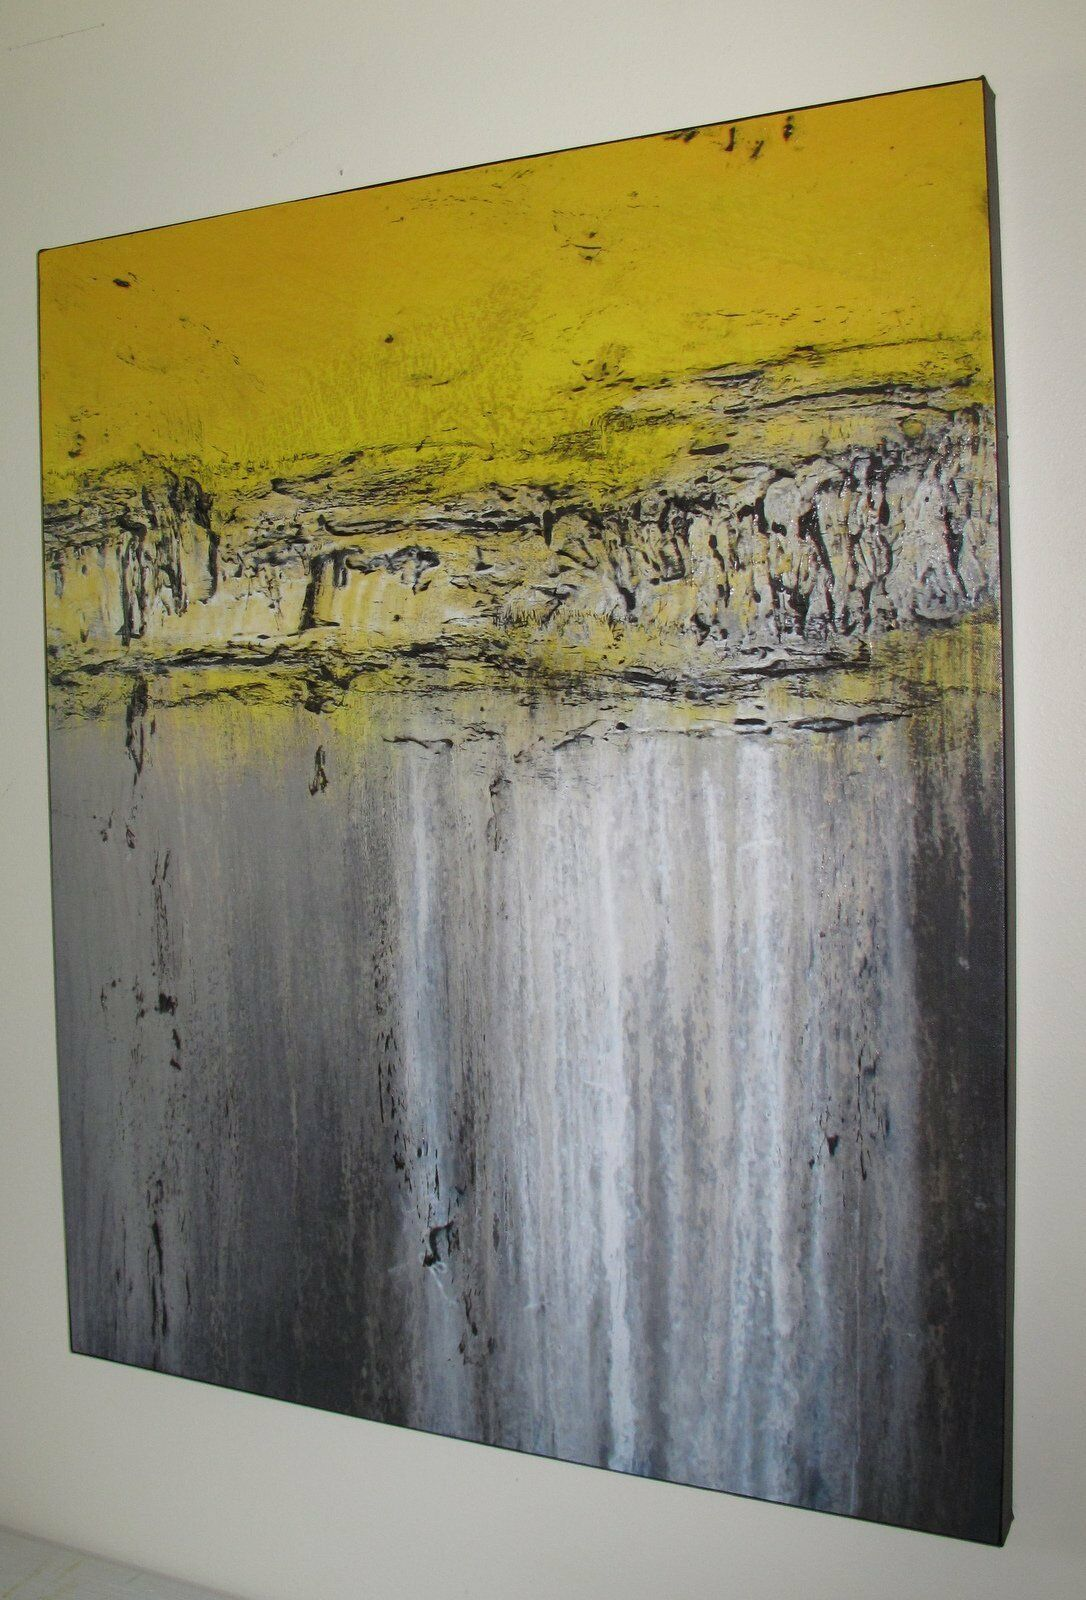 ABSTRACT MODERN PAINTING CANVAS WALL ART Direct From Artist, LARGE, US ELOISExxx - $165.00